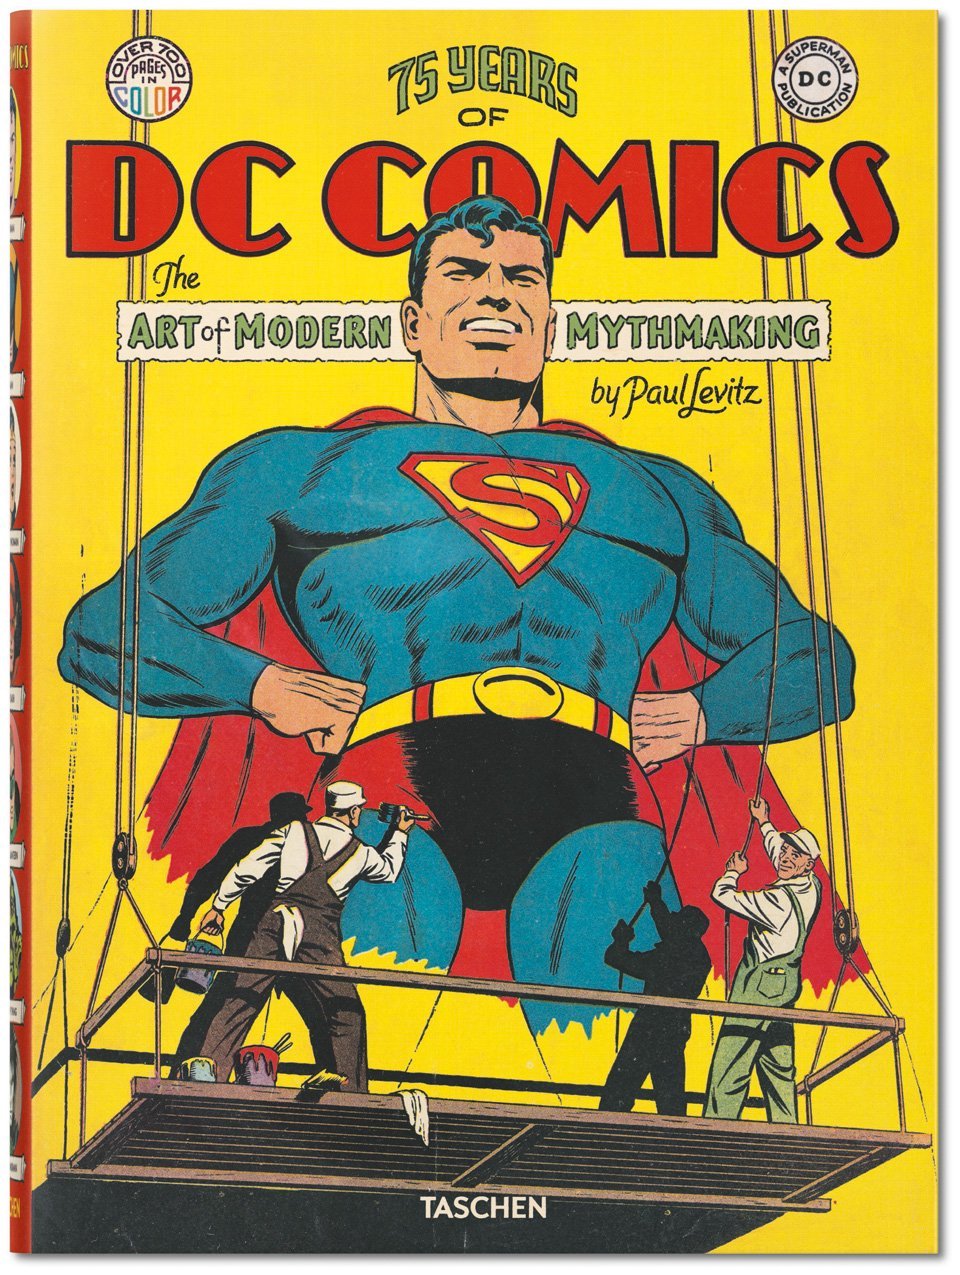 75_years_dc_comics_fp_gb_3d_04812_1703091950_id_1117787